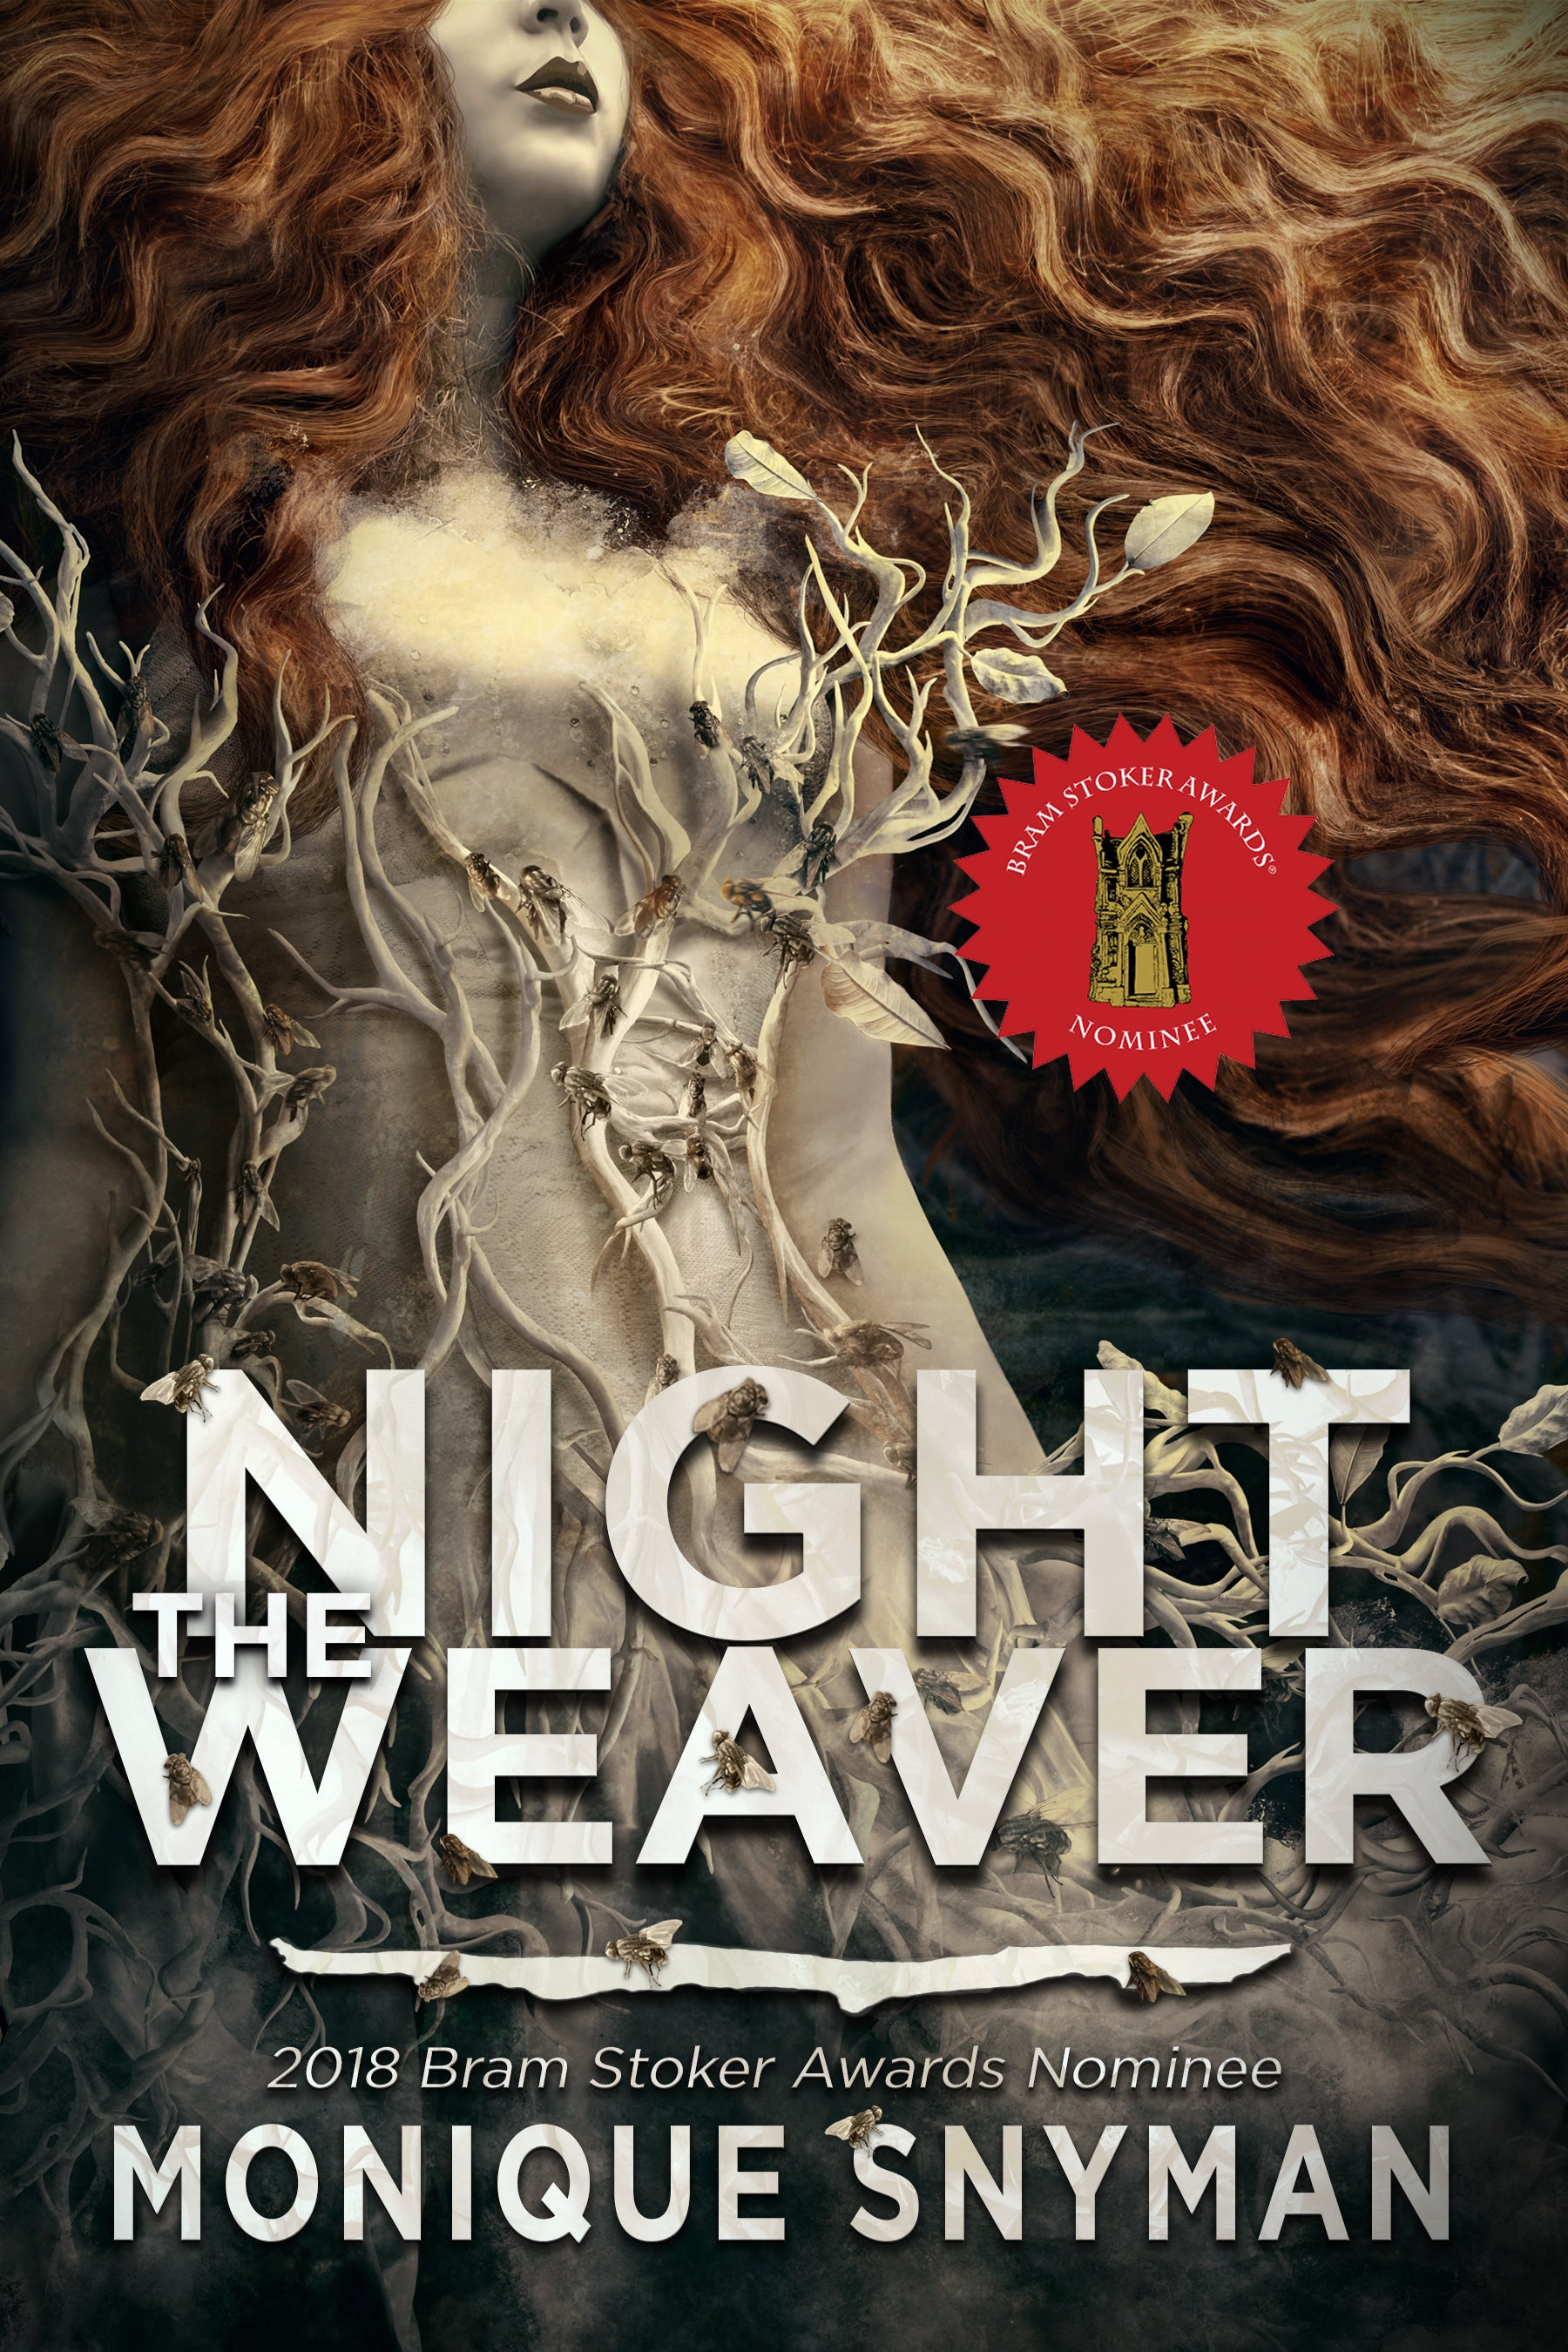 THE NIGHT WEAVER by Monique Snyman